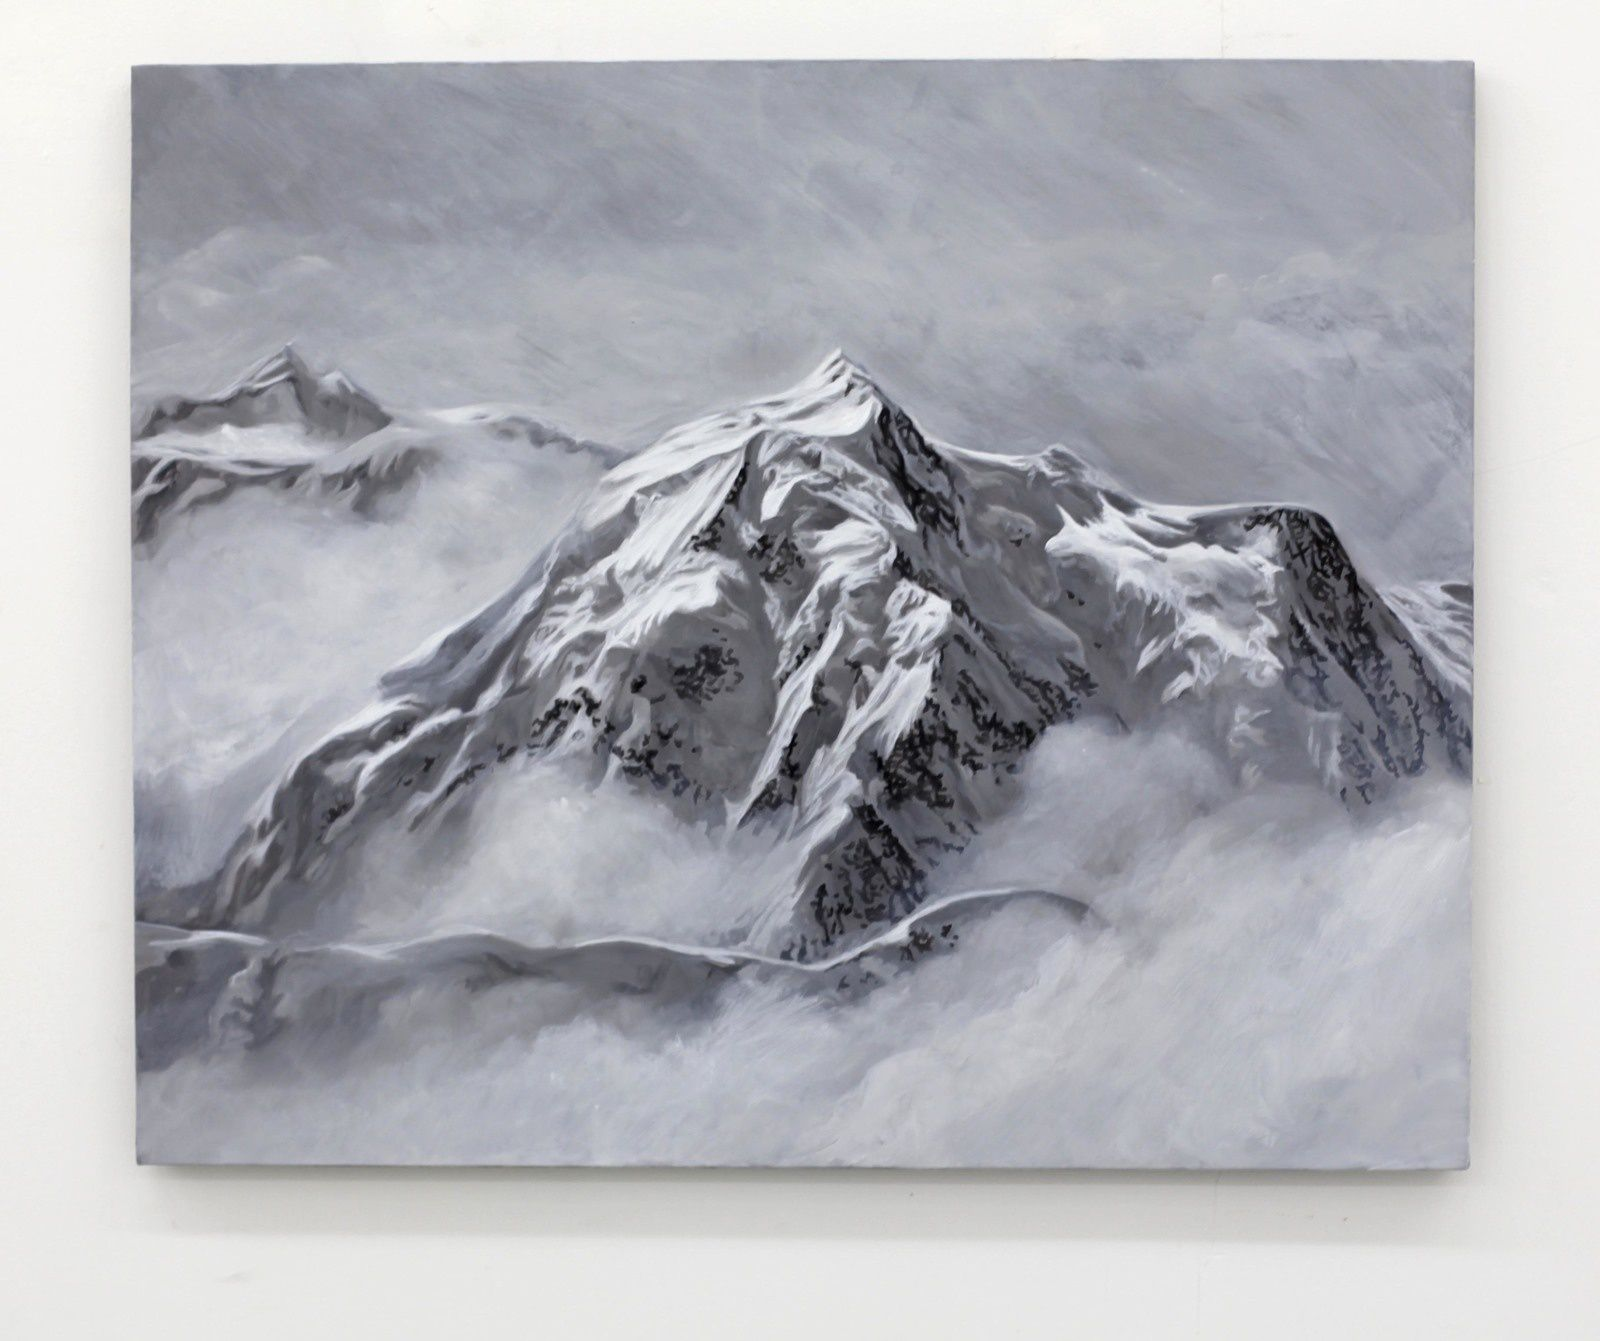 """Mont Blanc 4"", 2019 de Hervé HEUZÉ - Courtesy Galerie Richard Paris © Photo Éric Simon"